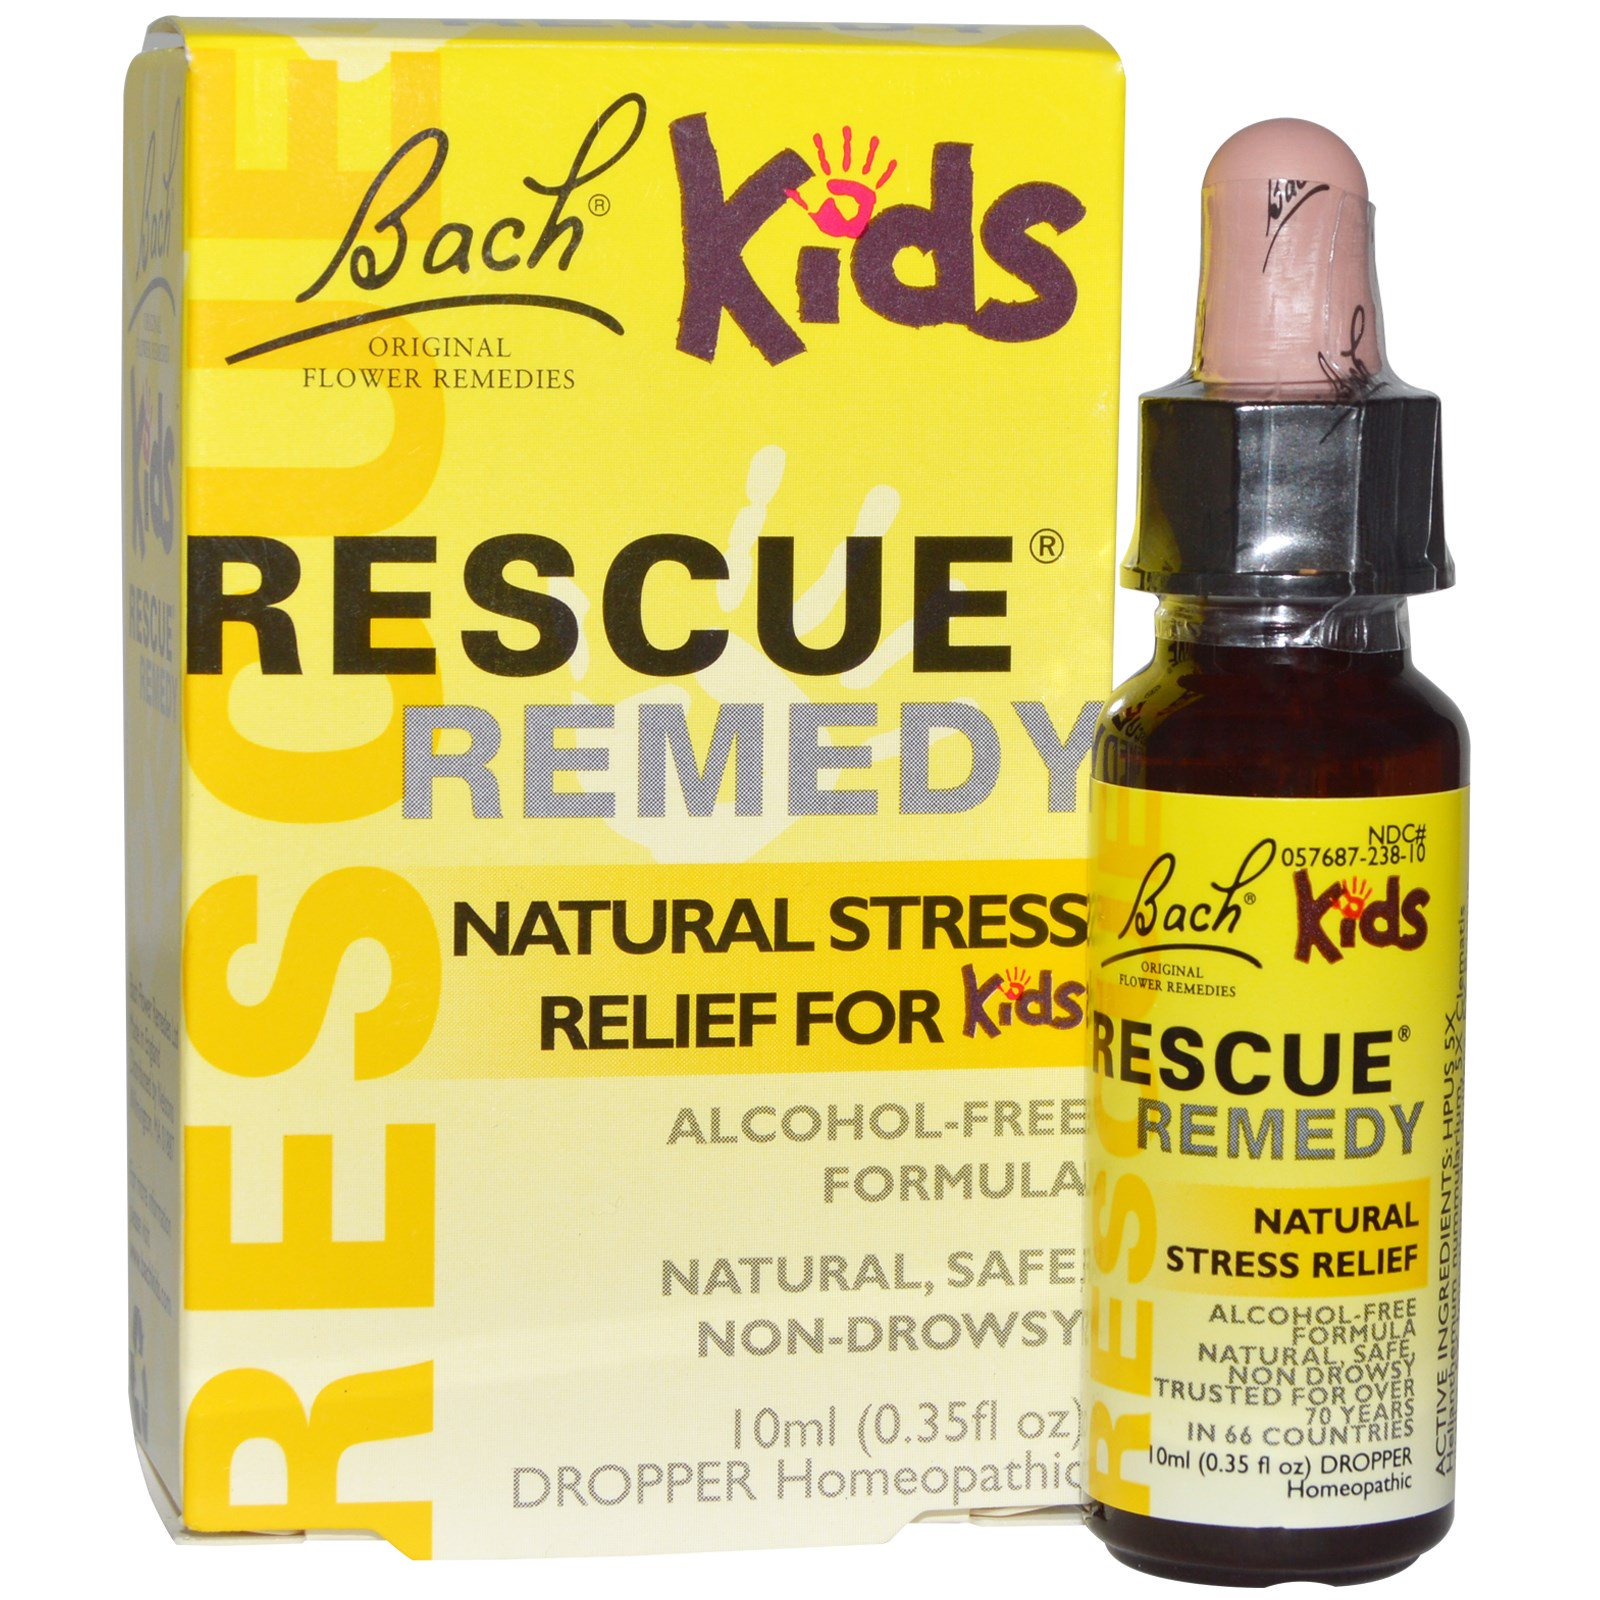 Bach Original Flower Remedies Rescue Remedy Natural Stress Relief